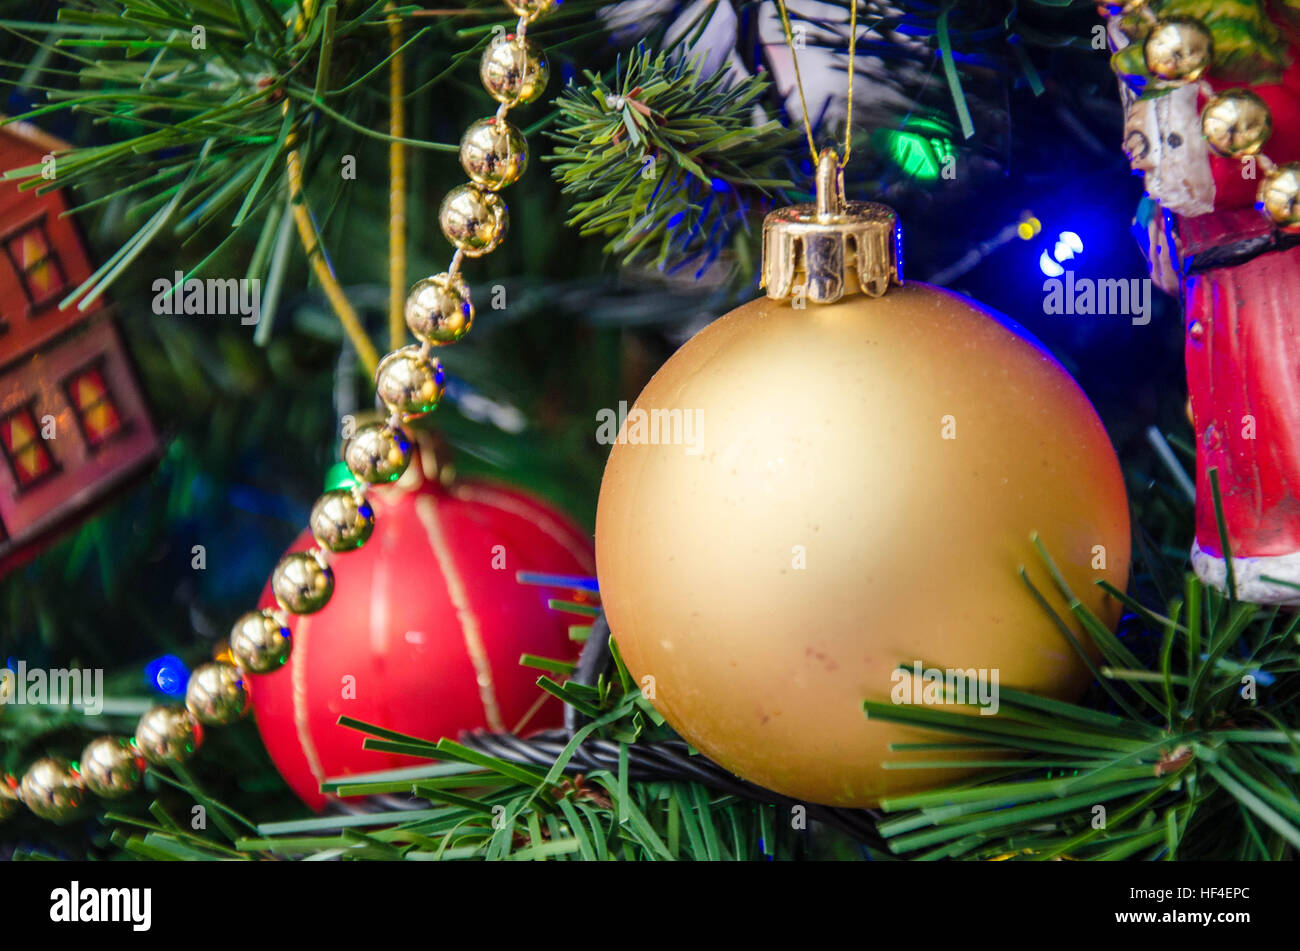 christmas-decorations-hanging-on-a-christmas-tree-HF4EPC.jpg